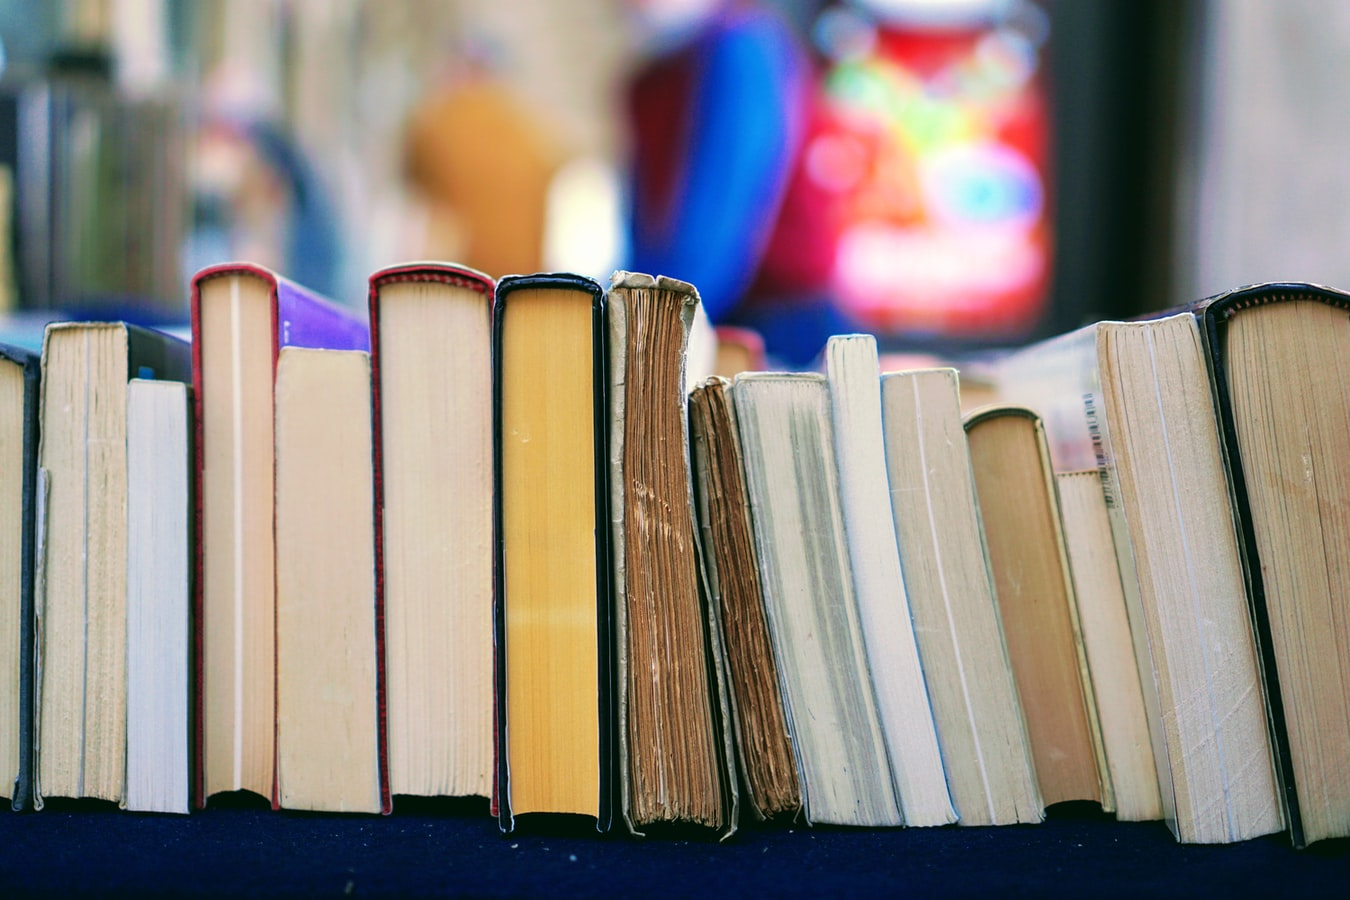 A bookshelf of old and new books.